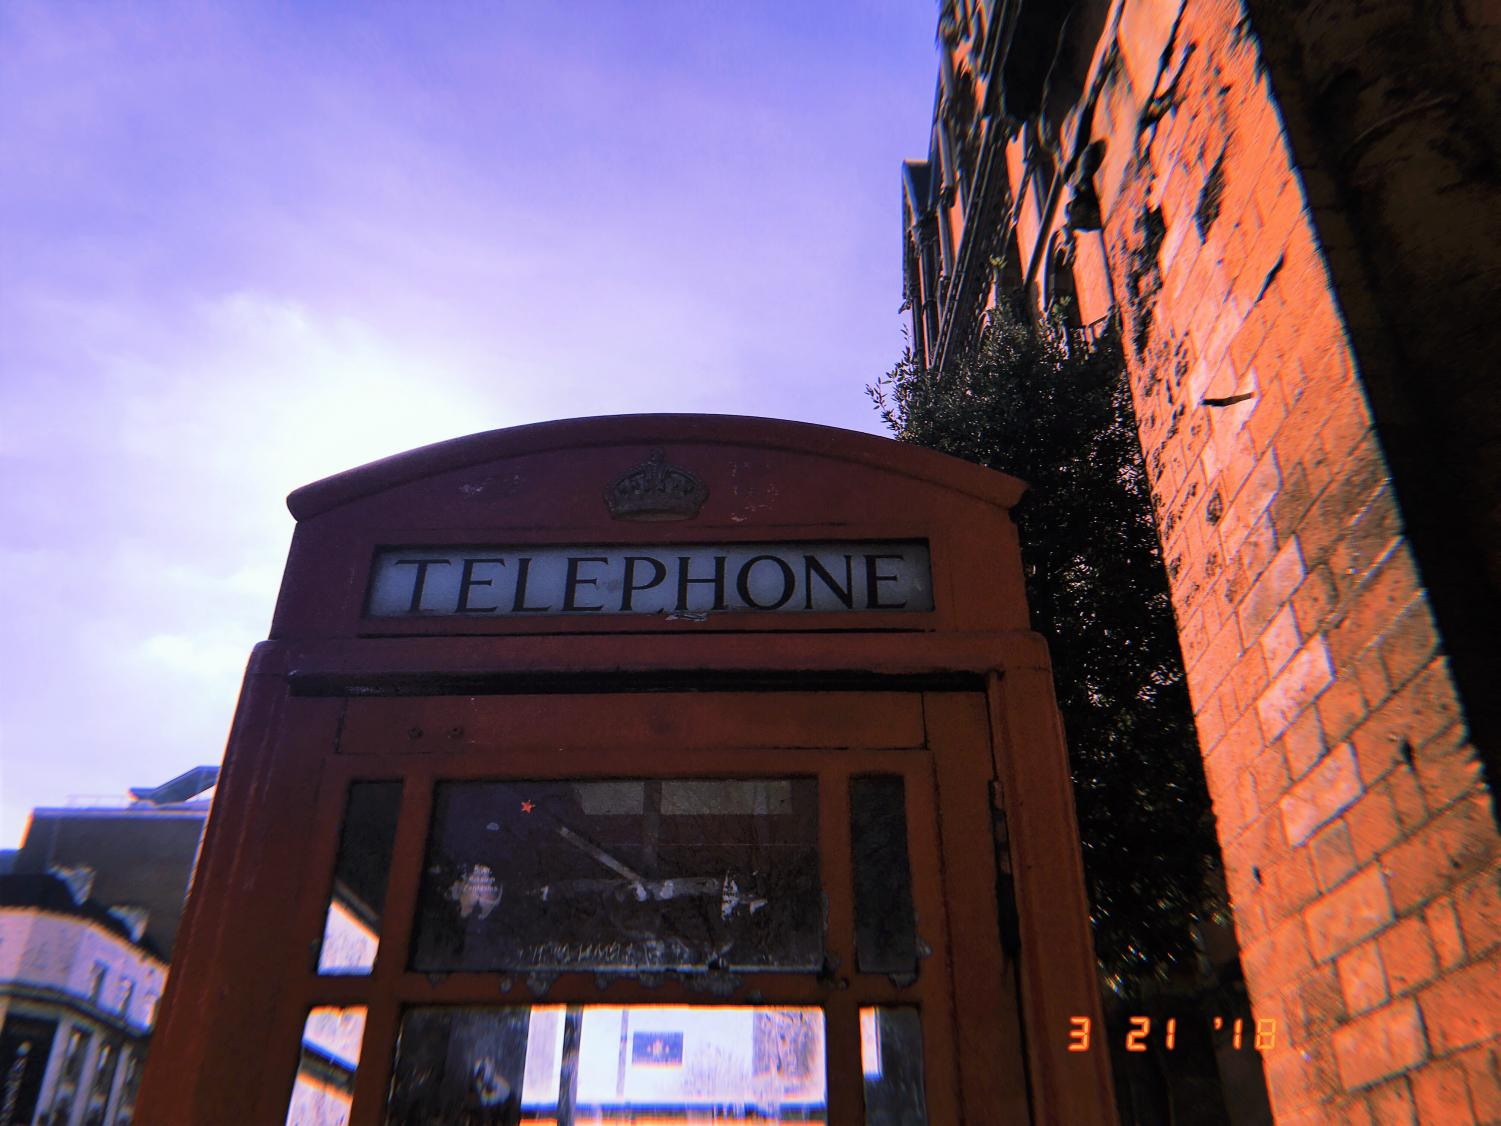 The+first+bright+red+telephone+booth+the+students+happened+upon+in+London+may+have+been+full+of+disgarded+litter+and+covered+in+graffiti%2C+but+it+was+still+an+opportunity+to+snap+pictures.+As+many+people+know%2C+the+telephone+booths+are+a+London+staple%2C+and+a+landmark+many+people+think+of+when+they+think+of+the+city.+Although+many+are+not+in+use+anymore%2C+they+remain+standing+for+tourists+to+take+pictures+in%2C+and+as+history+of+the+city.+